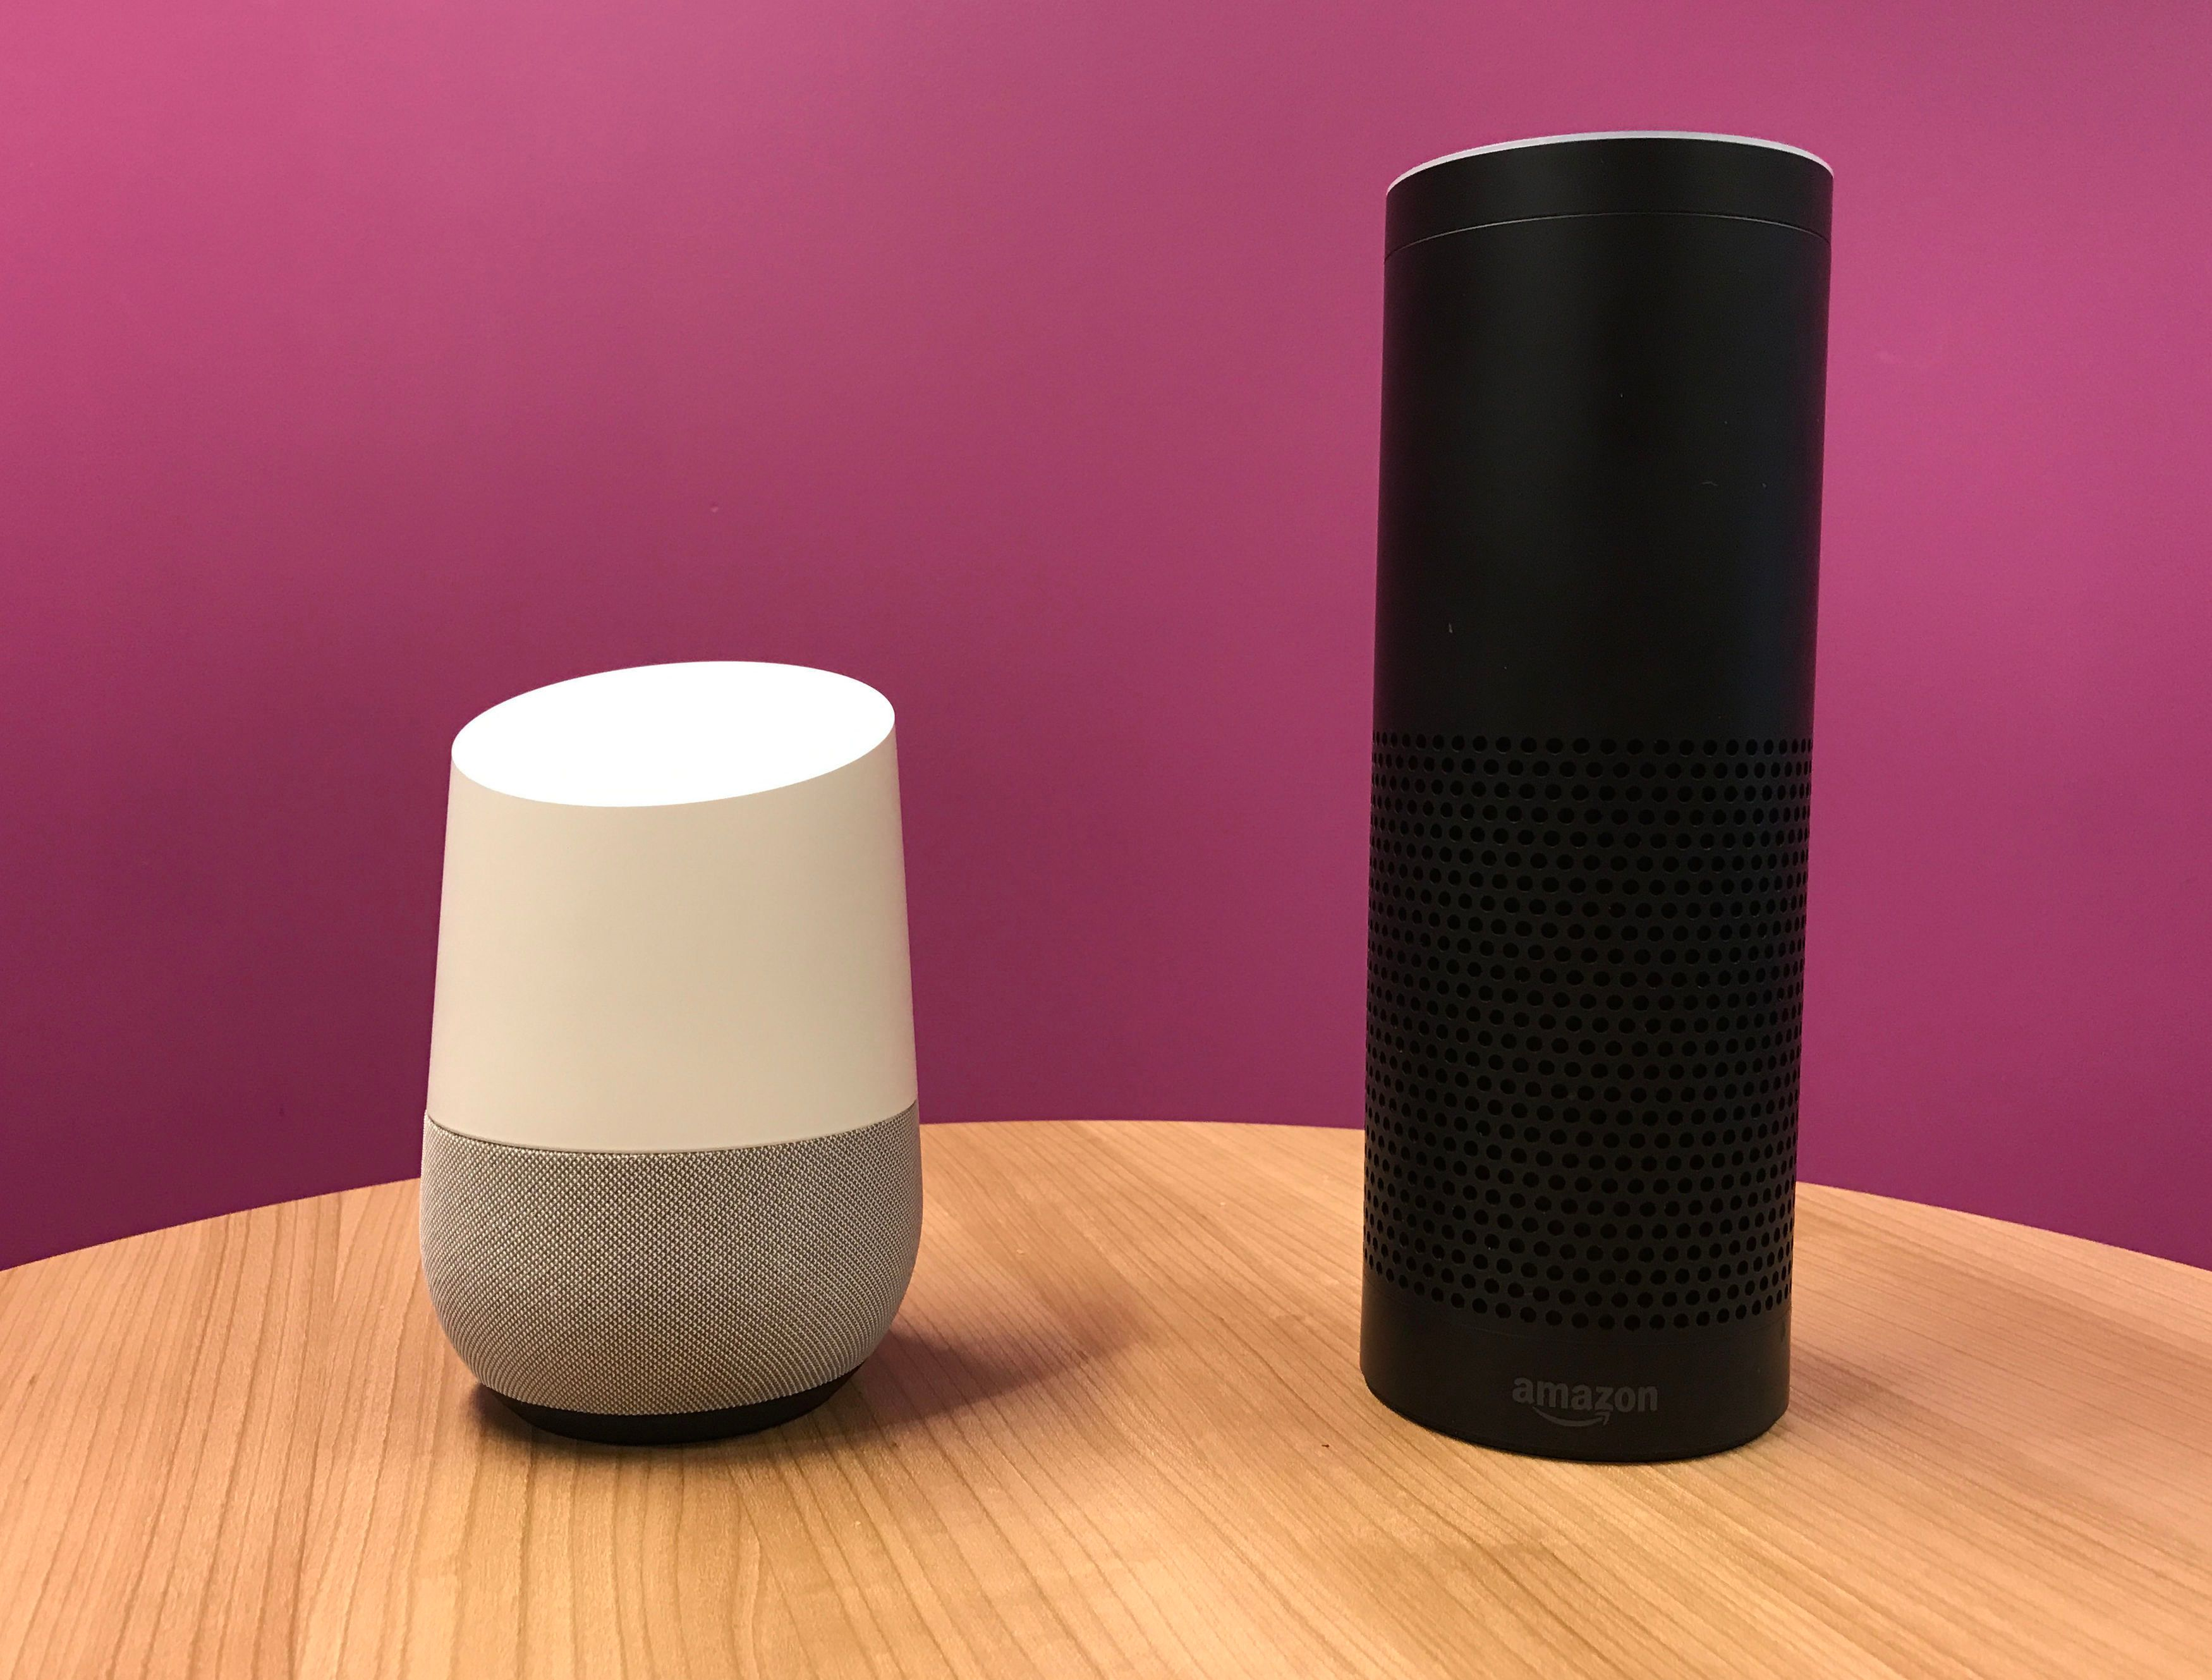 Google Home (left) which has been launched in the UK to rival Amazon's Echo (right), in London.